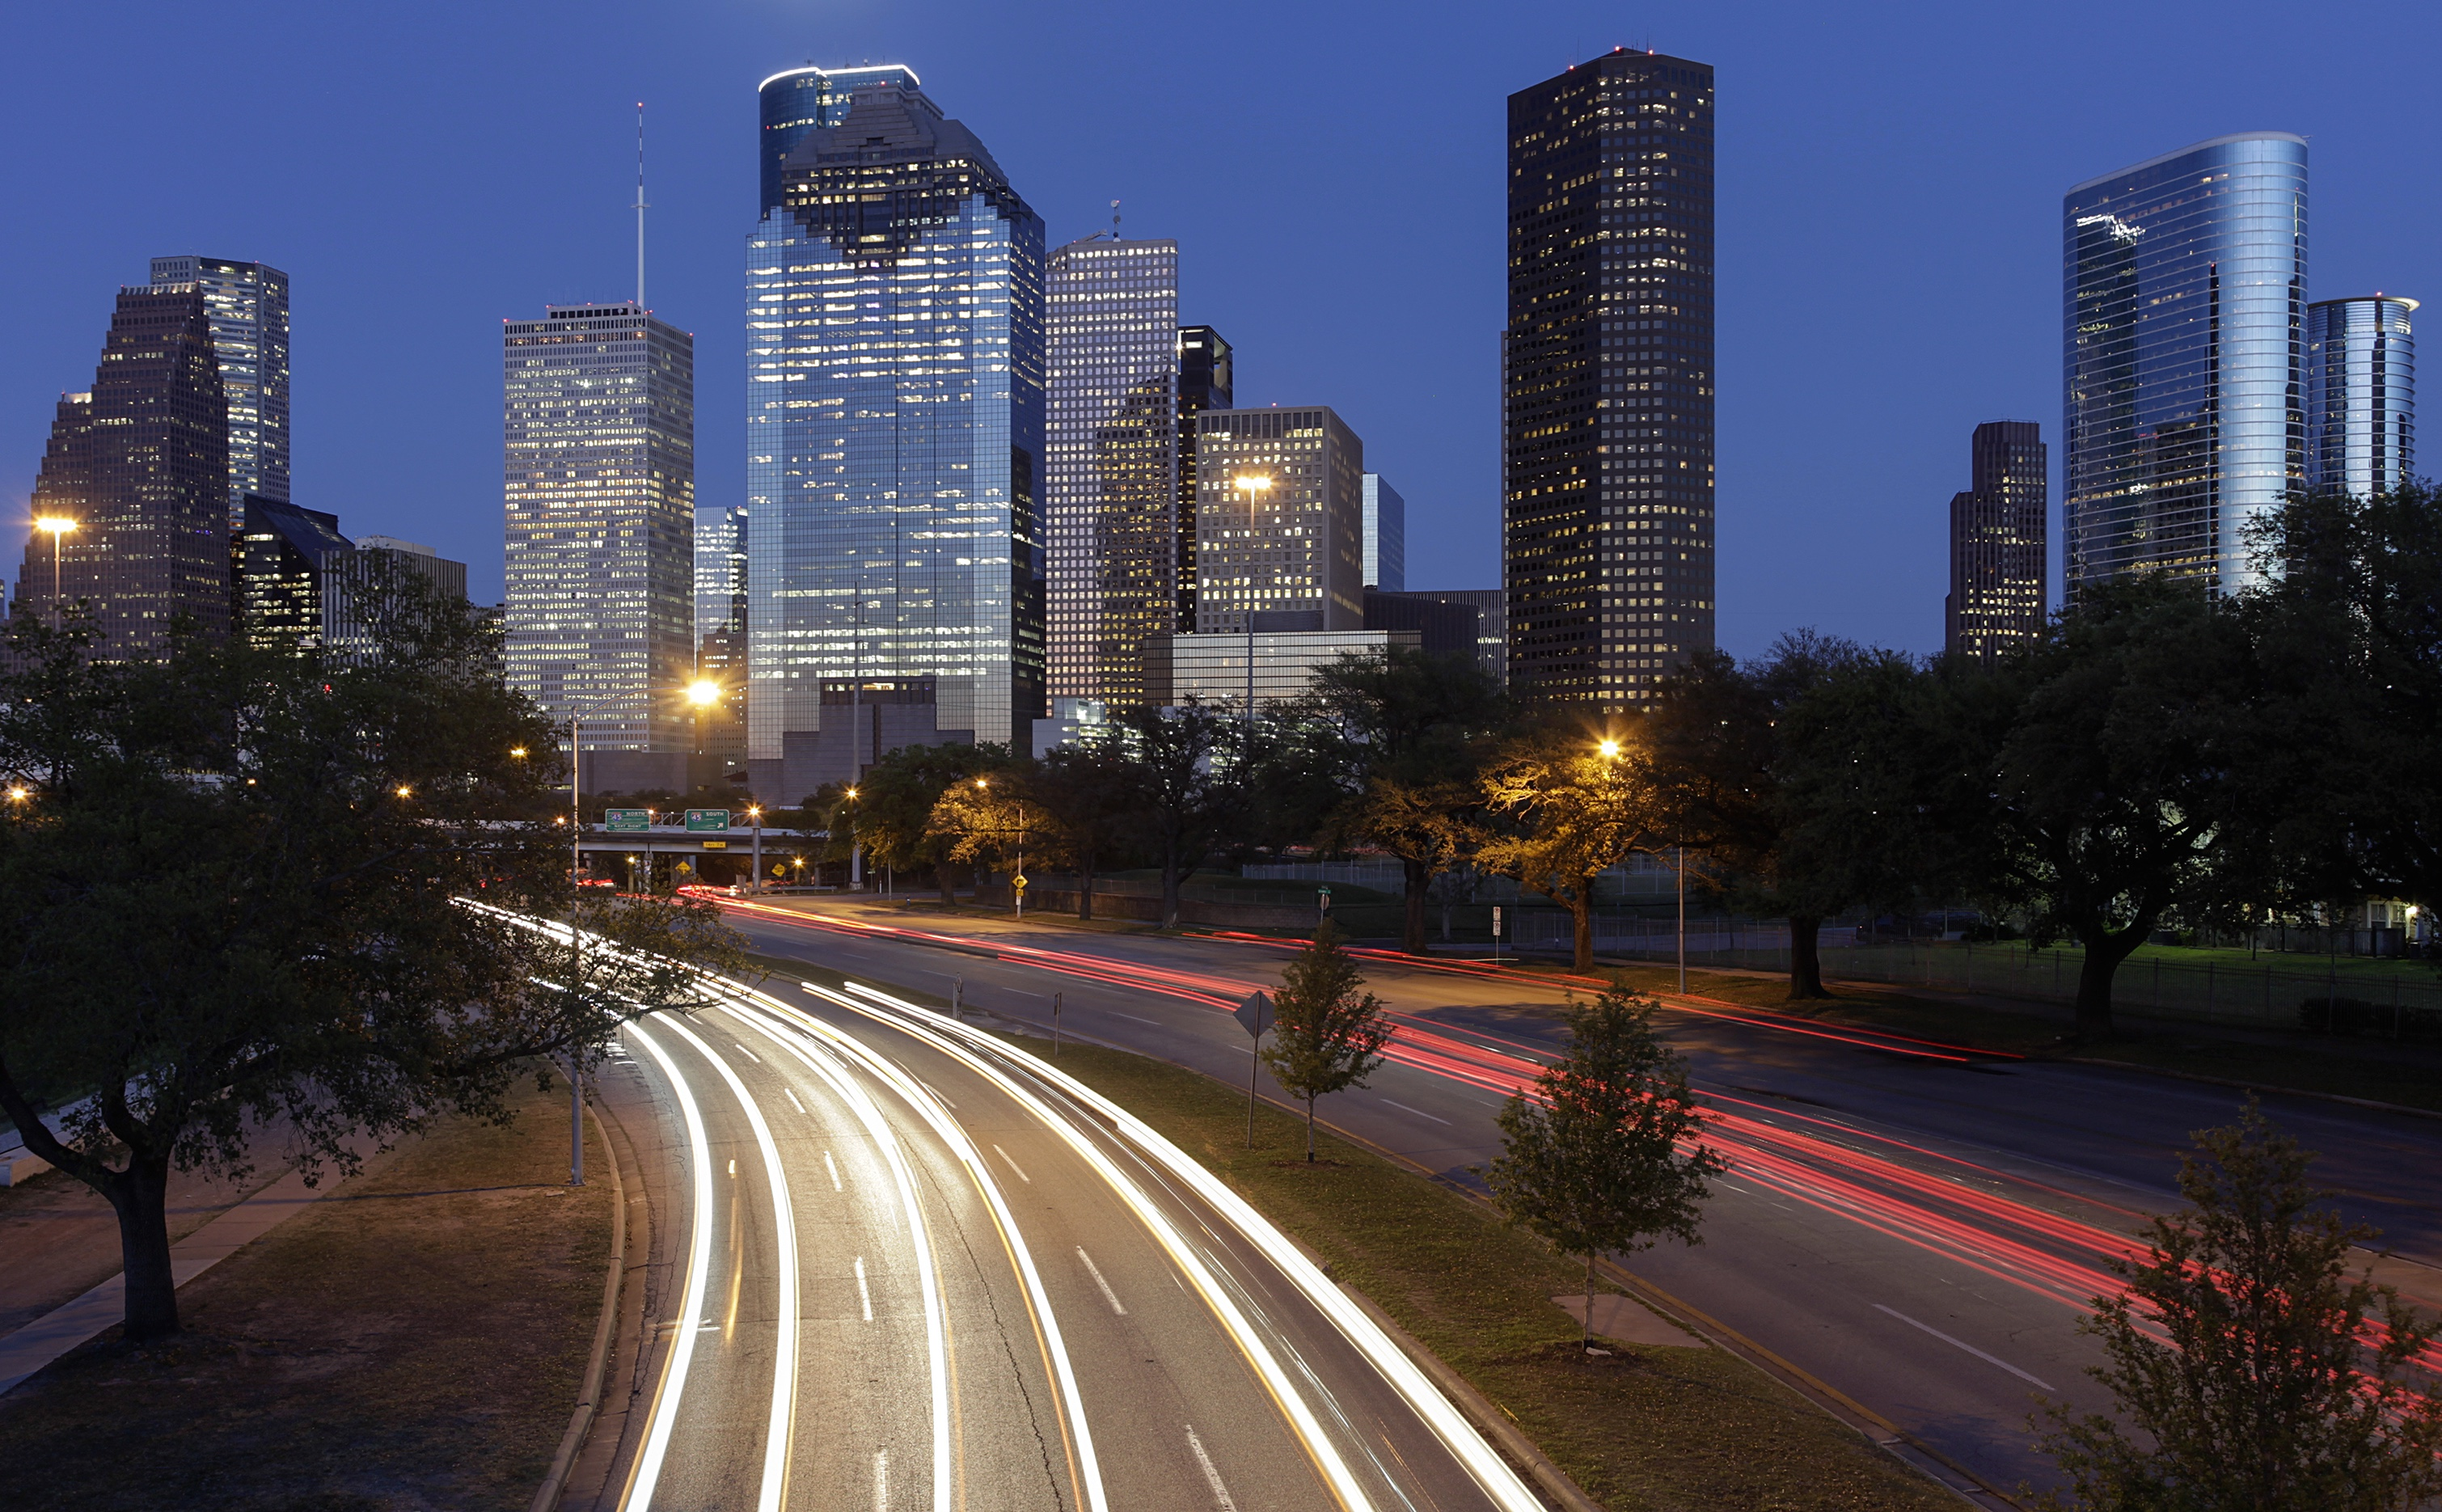 Downtown_Houston_from_Allen_Parkway_at_Dusk_copy_2.jpg